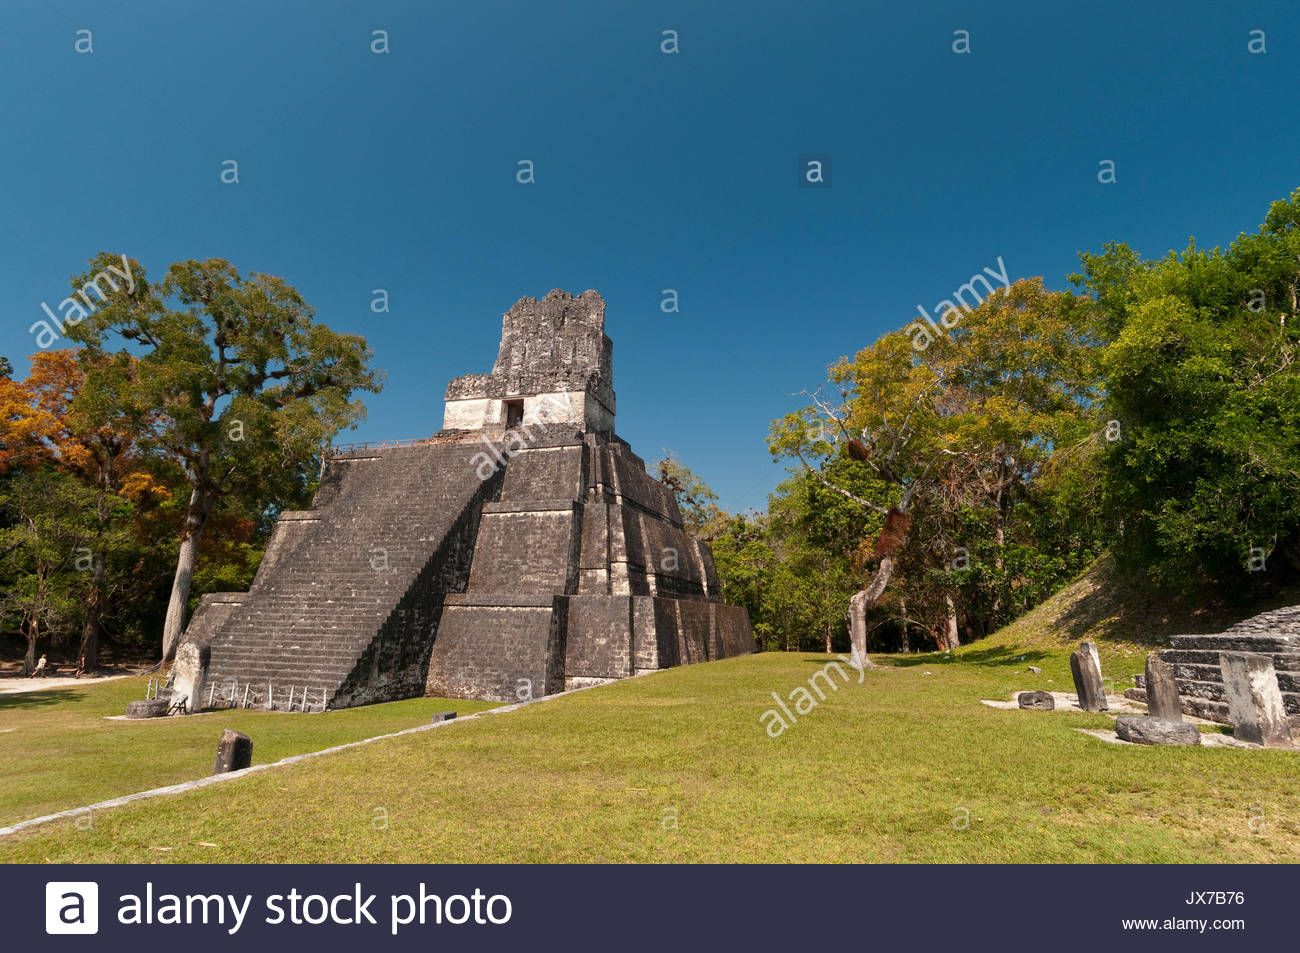 A view of the Temple II. - Stock Image